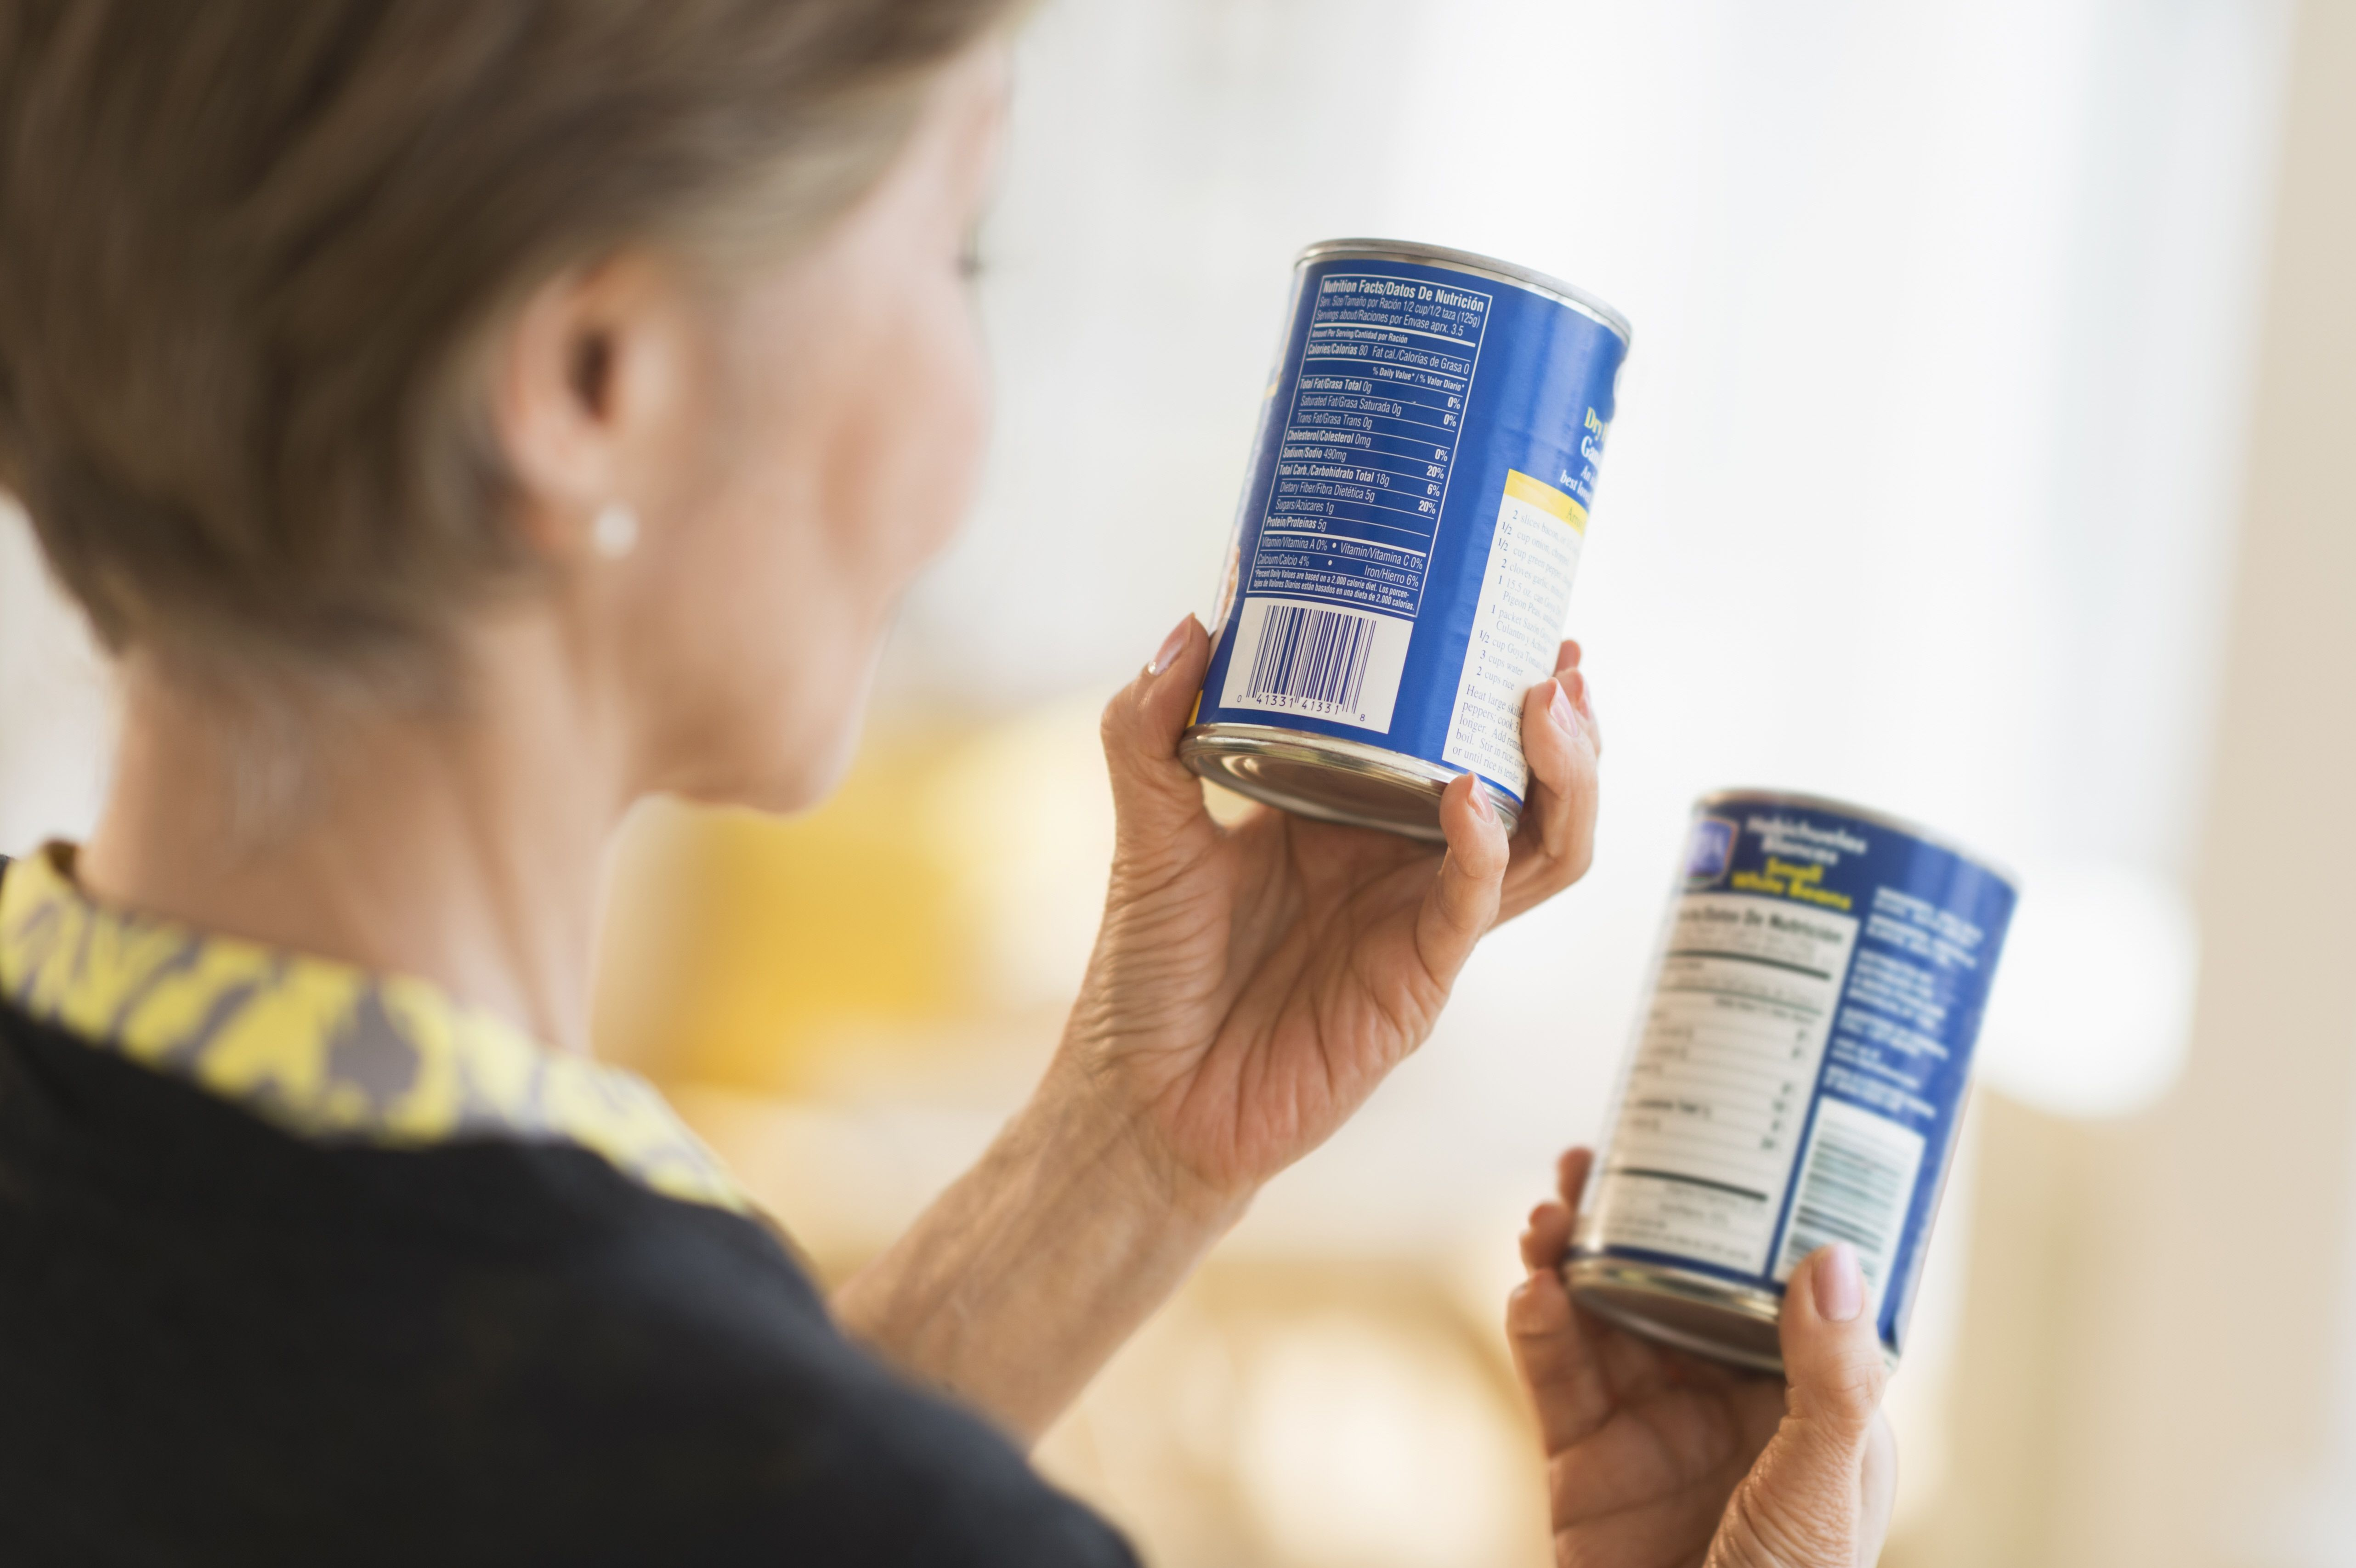 A woman reads labels on canned foods.